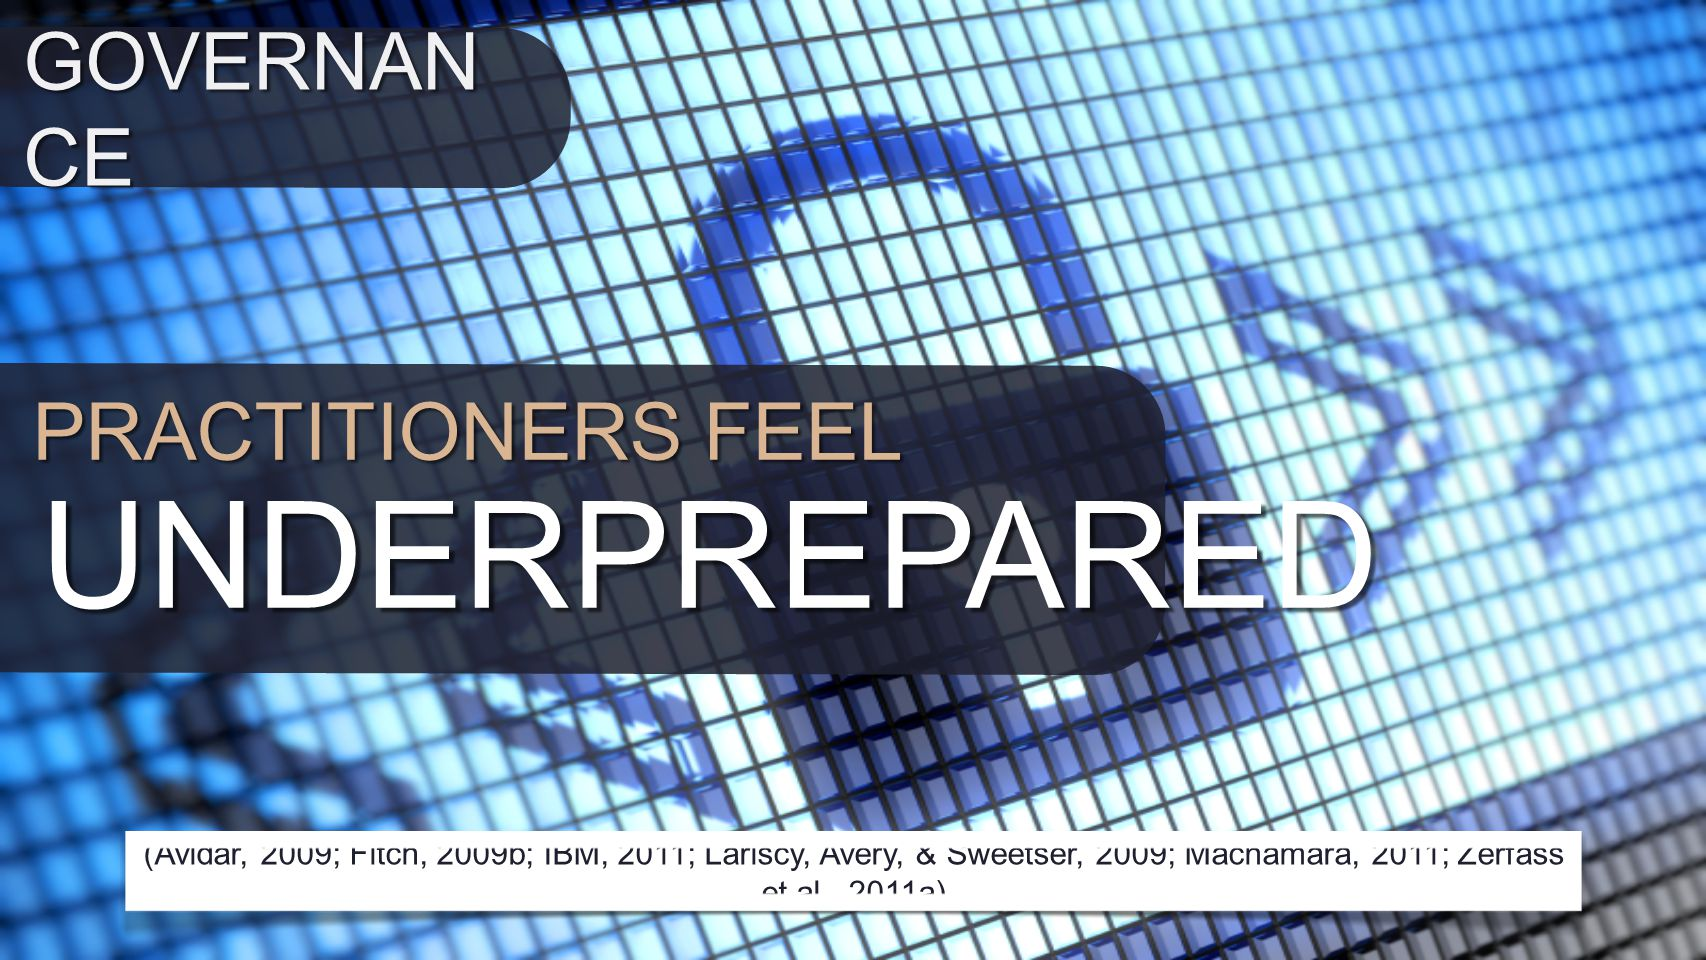 PRACTITIONERS FEEL UNDERPREPARED (Avidar, 2009; Fitch, 2009b; IBM, 2011; Lariscy, Avery, & Sweetser, 2009; Macnamara, 2011; Zerfass et al., 2011a) GOVERNAN CE